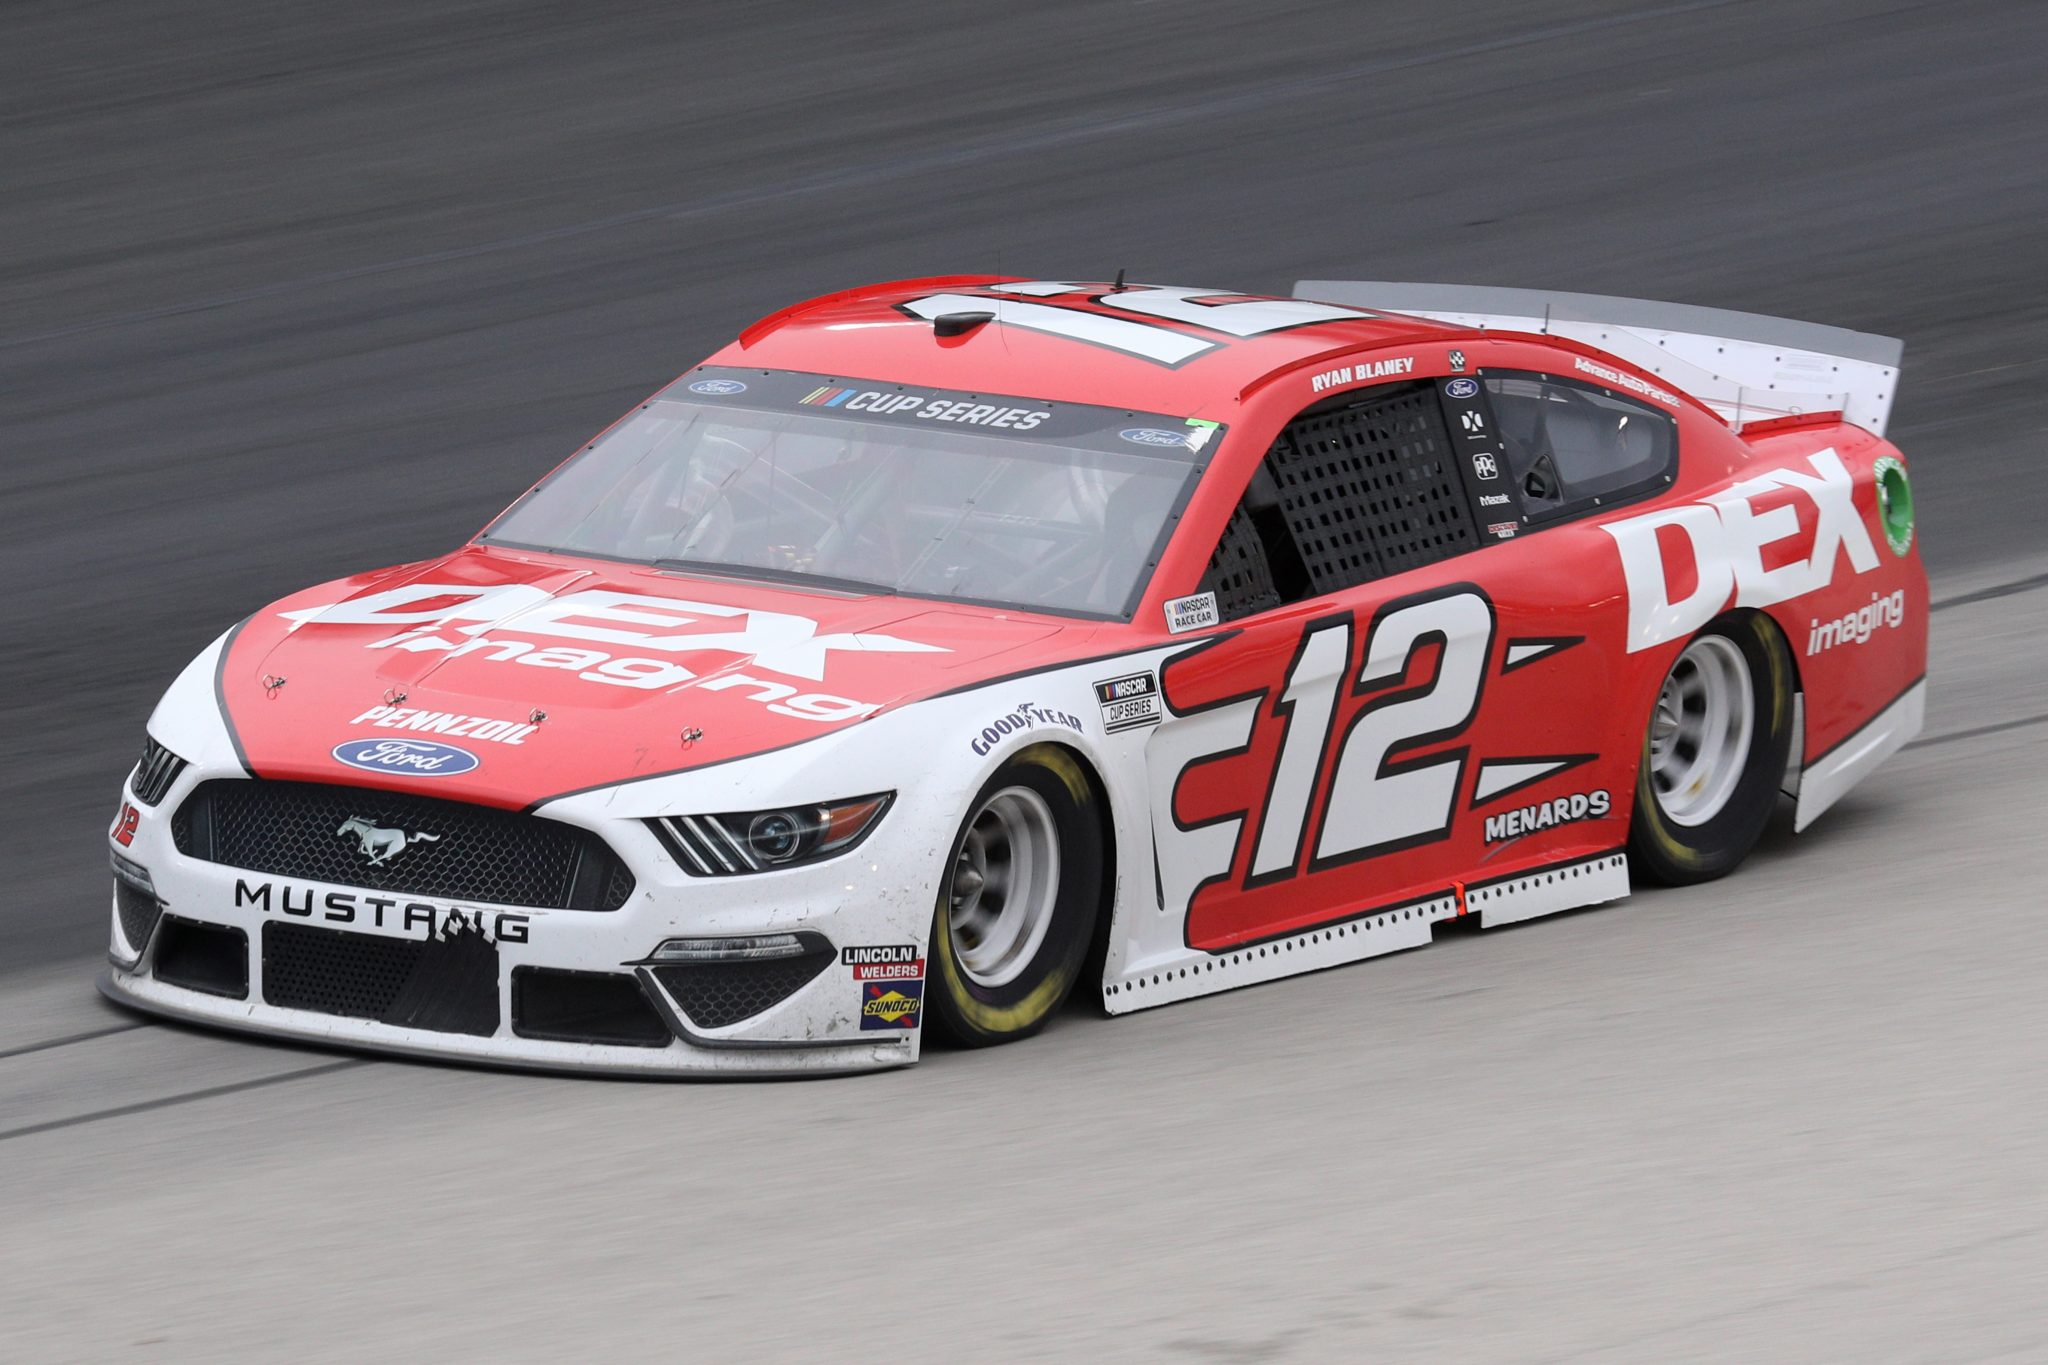 FORT WORTH, TEXAS - OCTOBER 28: Ryan Blaney, driver of the #12 DEX Imaging Ford, drives during the NASCAR Cup Series Autotrader EchoPark Automotive 500 at Texas Motor Speedway on October 28, 2020 in Fort Worth, Texas. (Photo by Chris Graythen/Getty Images) | Getty Images